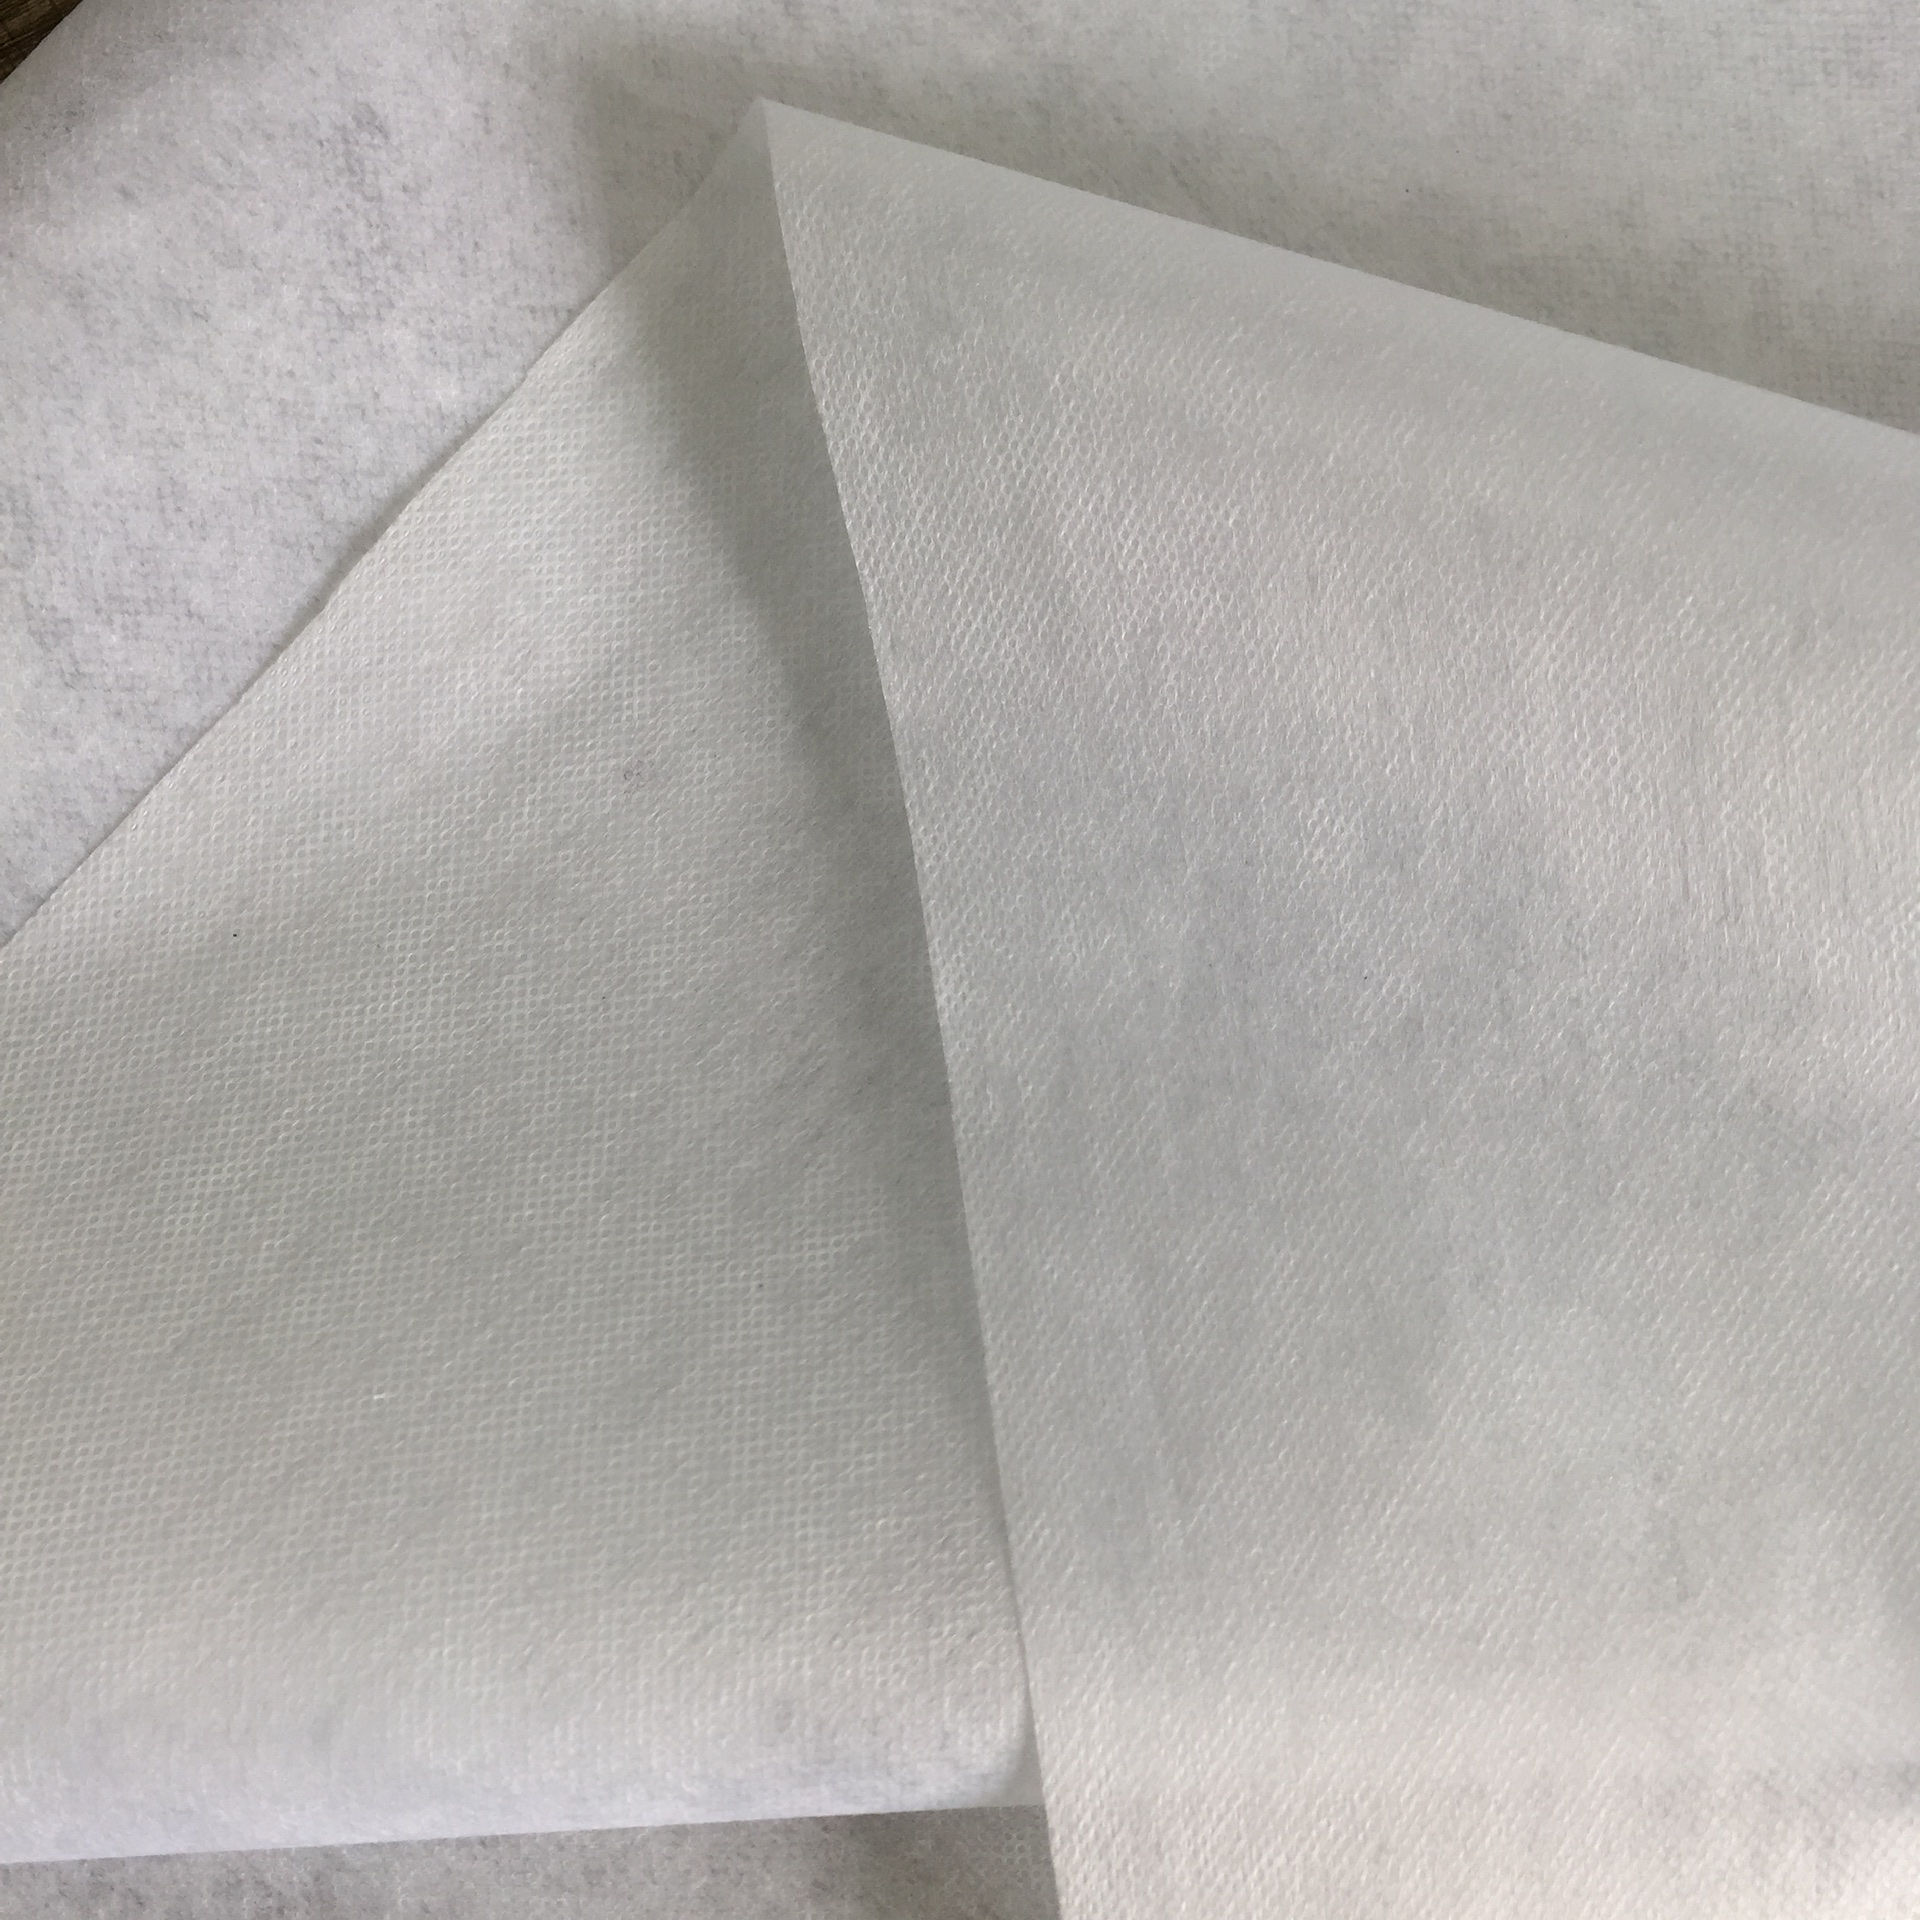 Thermal bond non woven microdot interlining base fabric without glue/adhesive